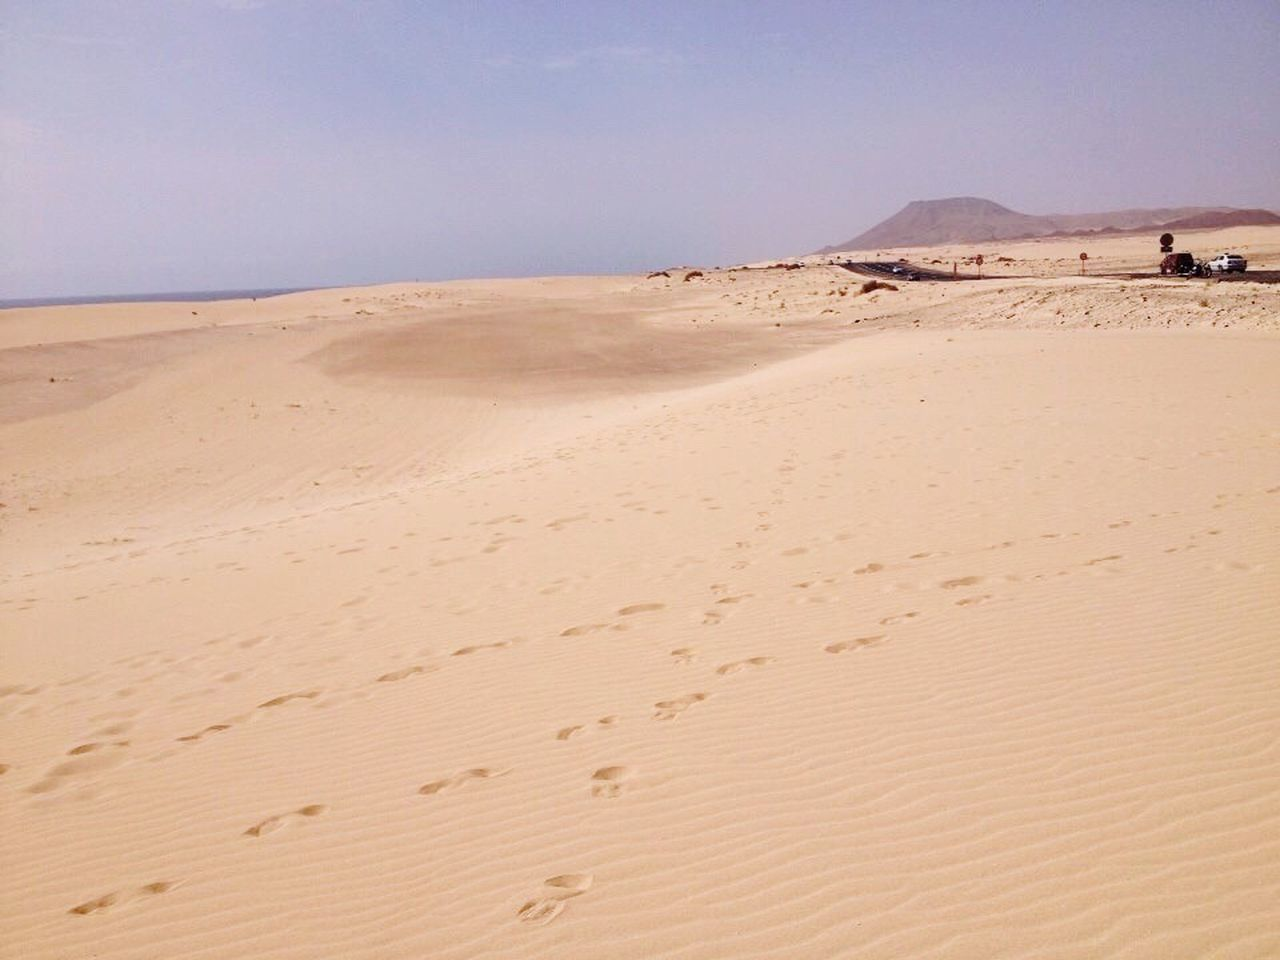 sand, beach, sand dune, desert, nature, arid climate, shore, scenics, beauty in nature, tranquil scene, landscape, day, tranquility, outdoors, sea, clear sky, sky, no people